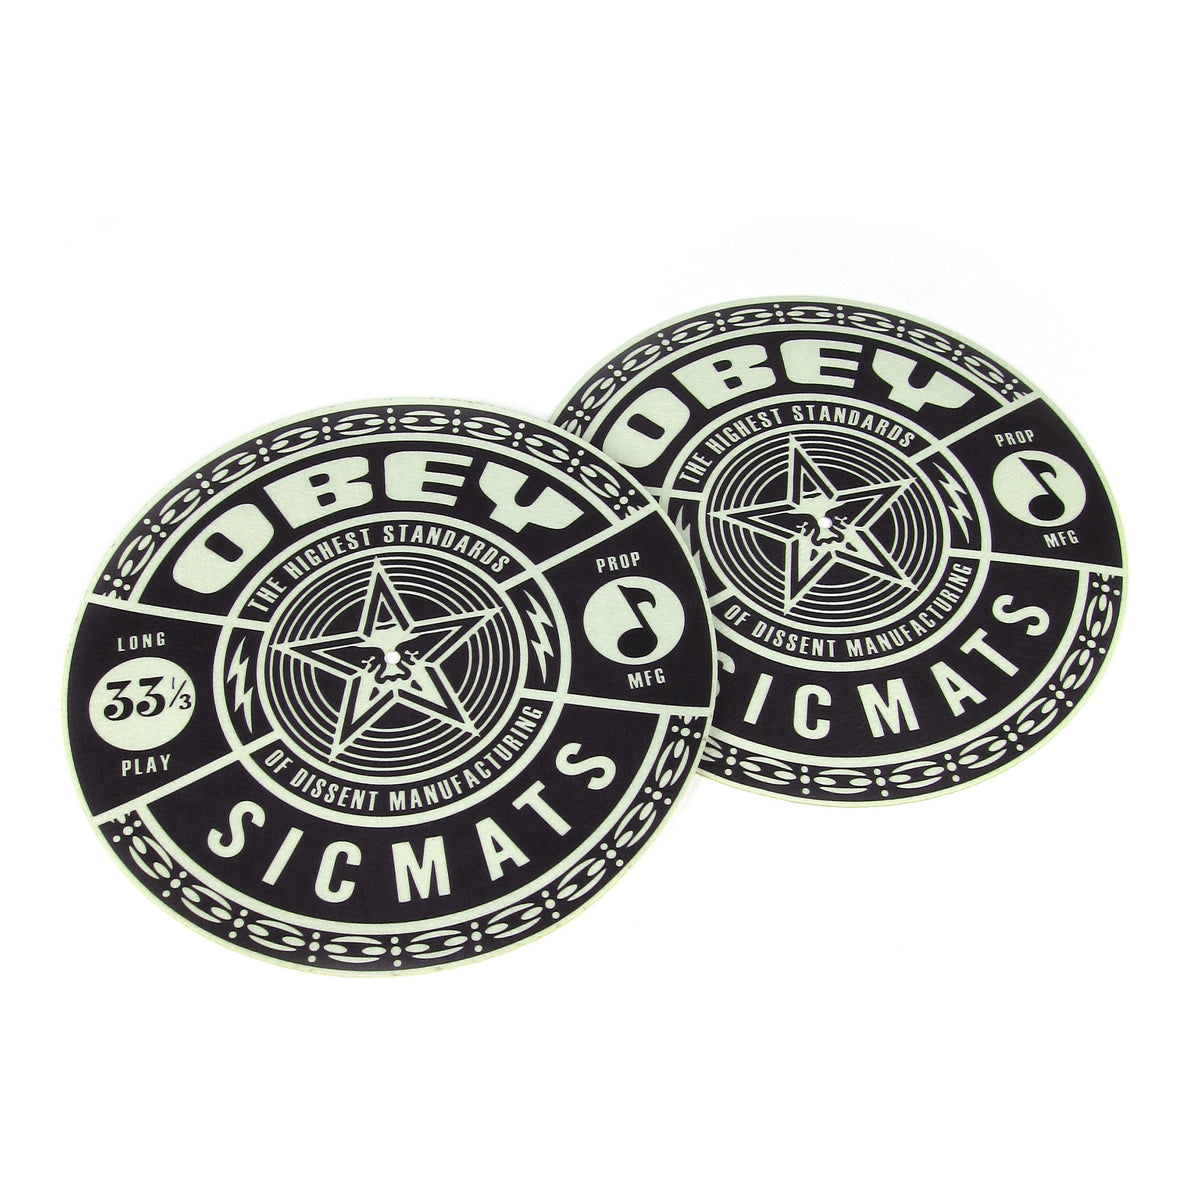 Sicmats: Obey Slipmats (Pair) - Black / Green